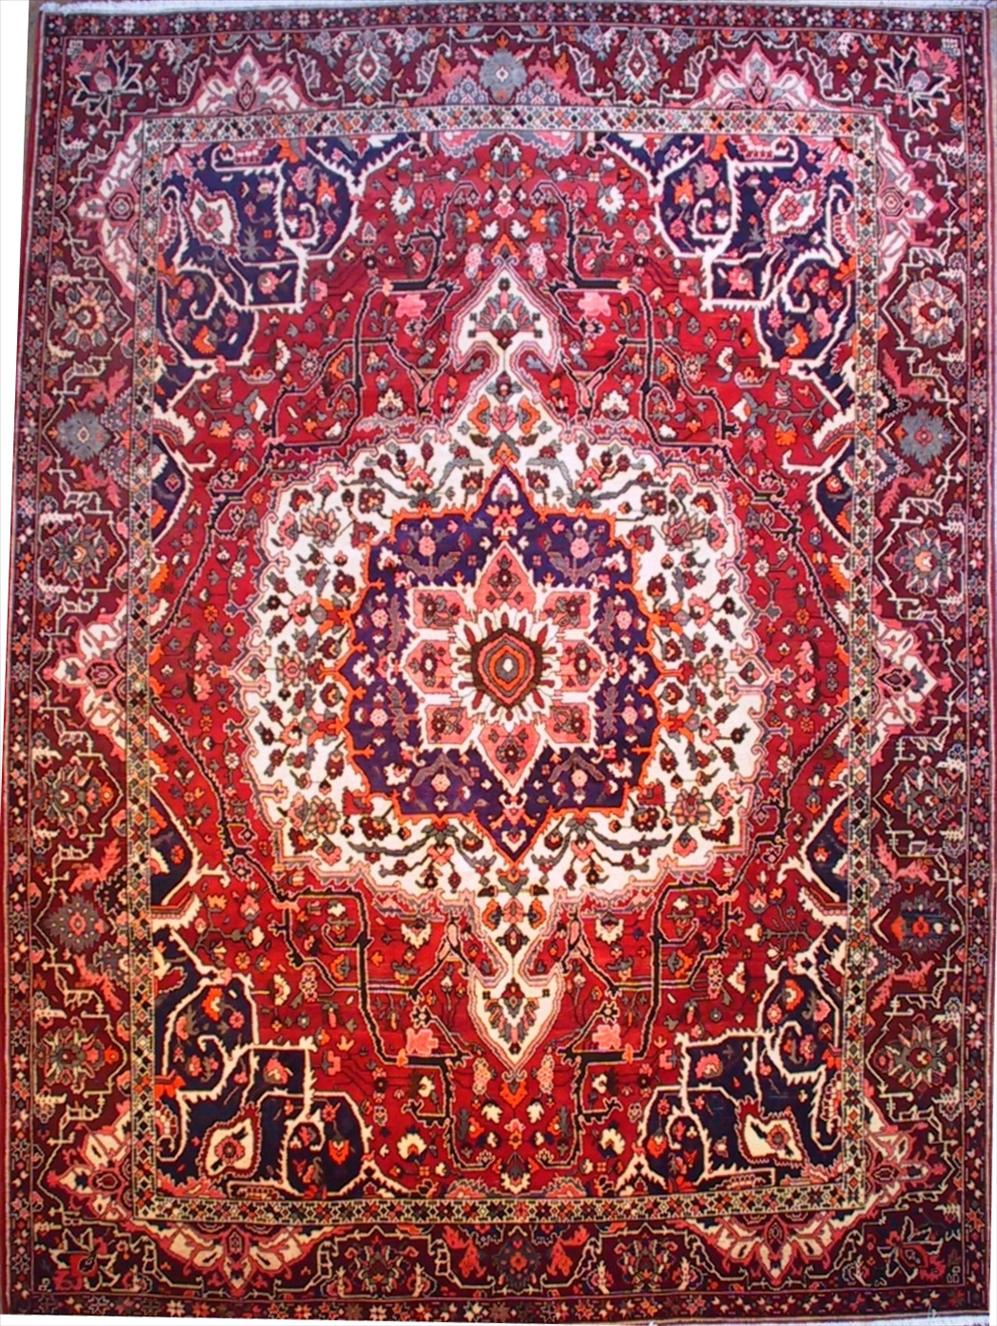 Amazing 684 Bakhtiari rugs - This Traditional rug is approx imately 10 feet red persian rug